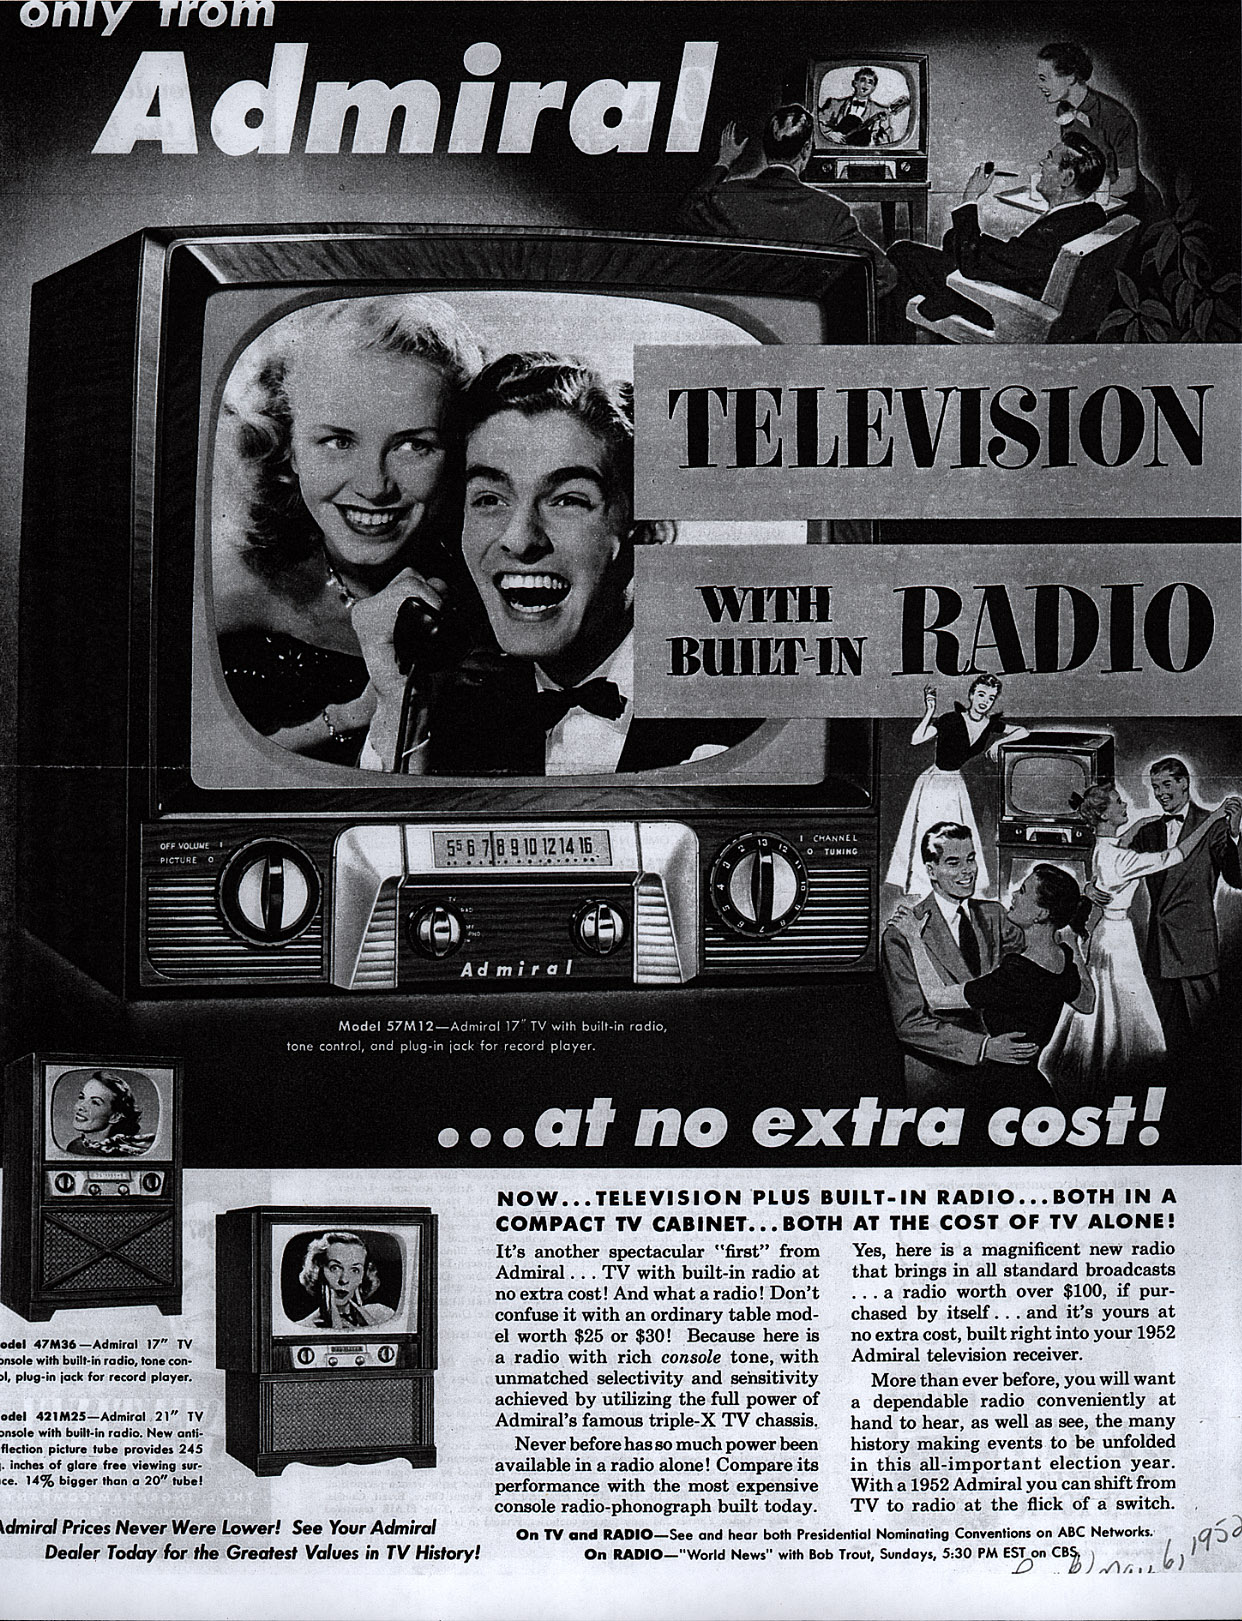 Only_From_Admiral._Television_with_Built-In_Radio_..._at_No_Extra_Cost